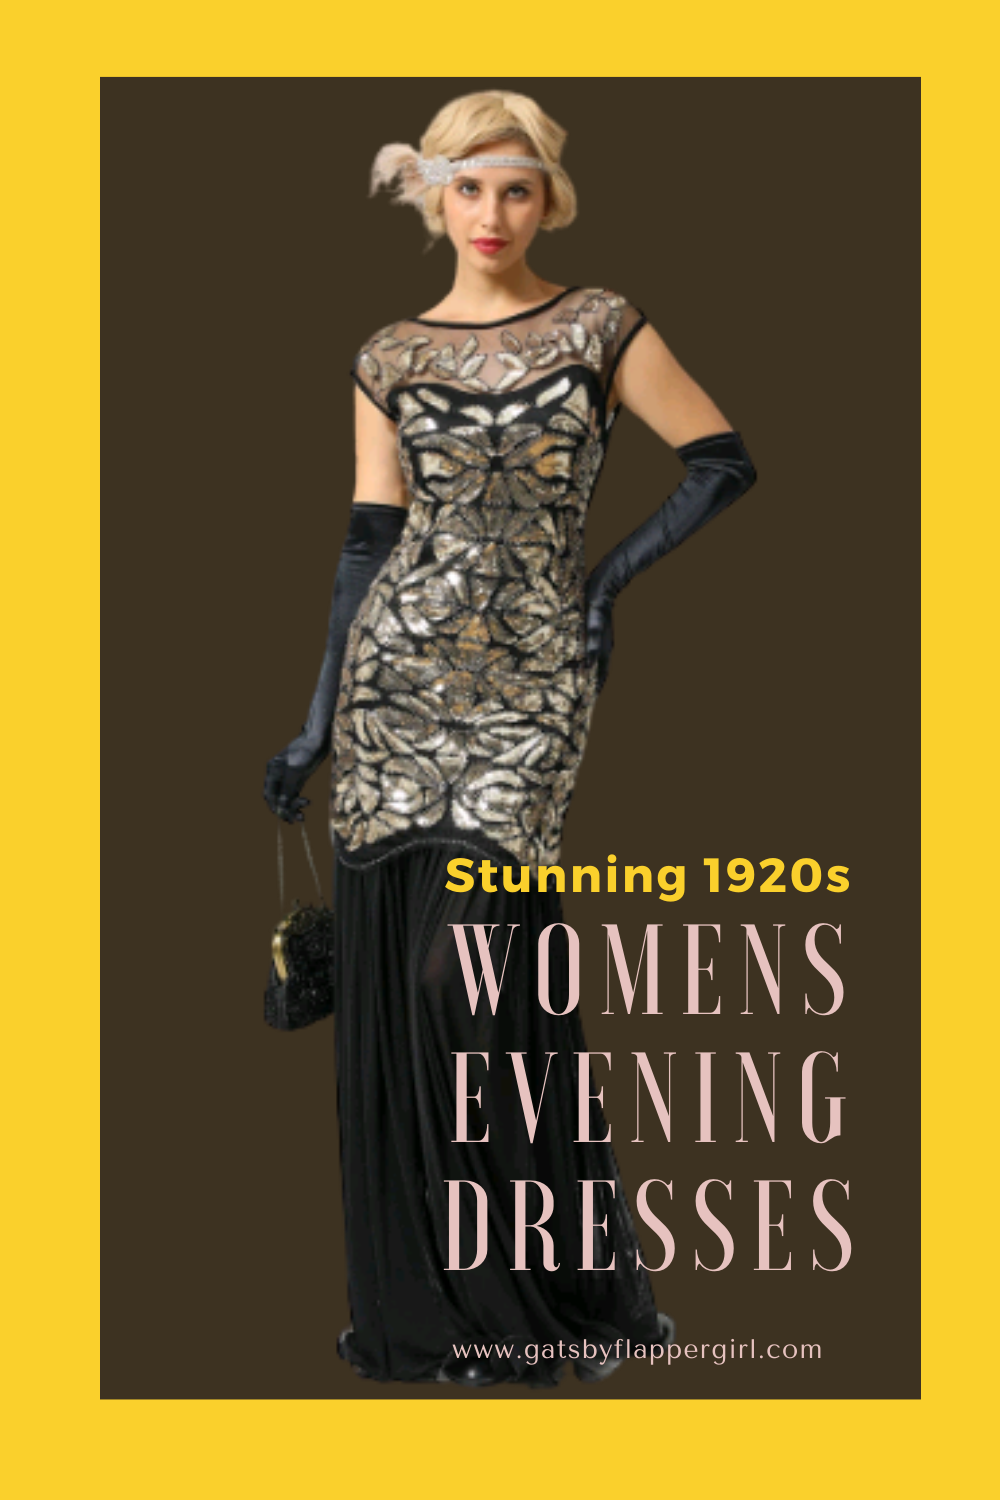 1920s Evening Gowns Formal Evening Dresses 20s Style 1920s Evening Dress Women S Evening Dresses Evening Dresses [ 1500 x 1000 Pixel ]